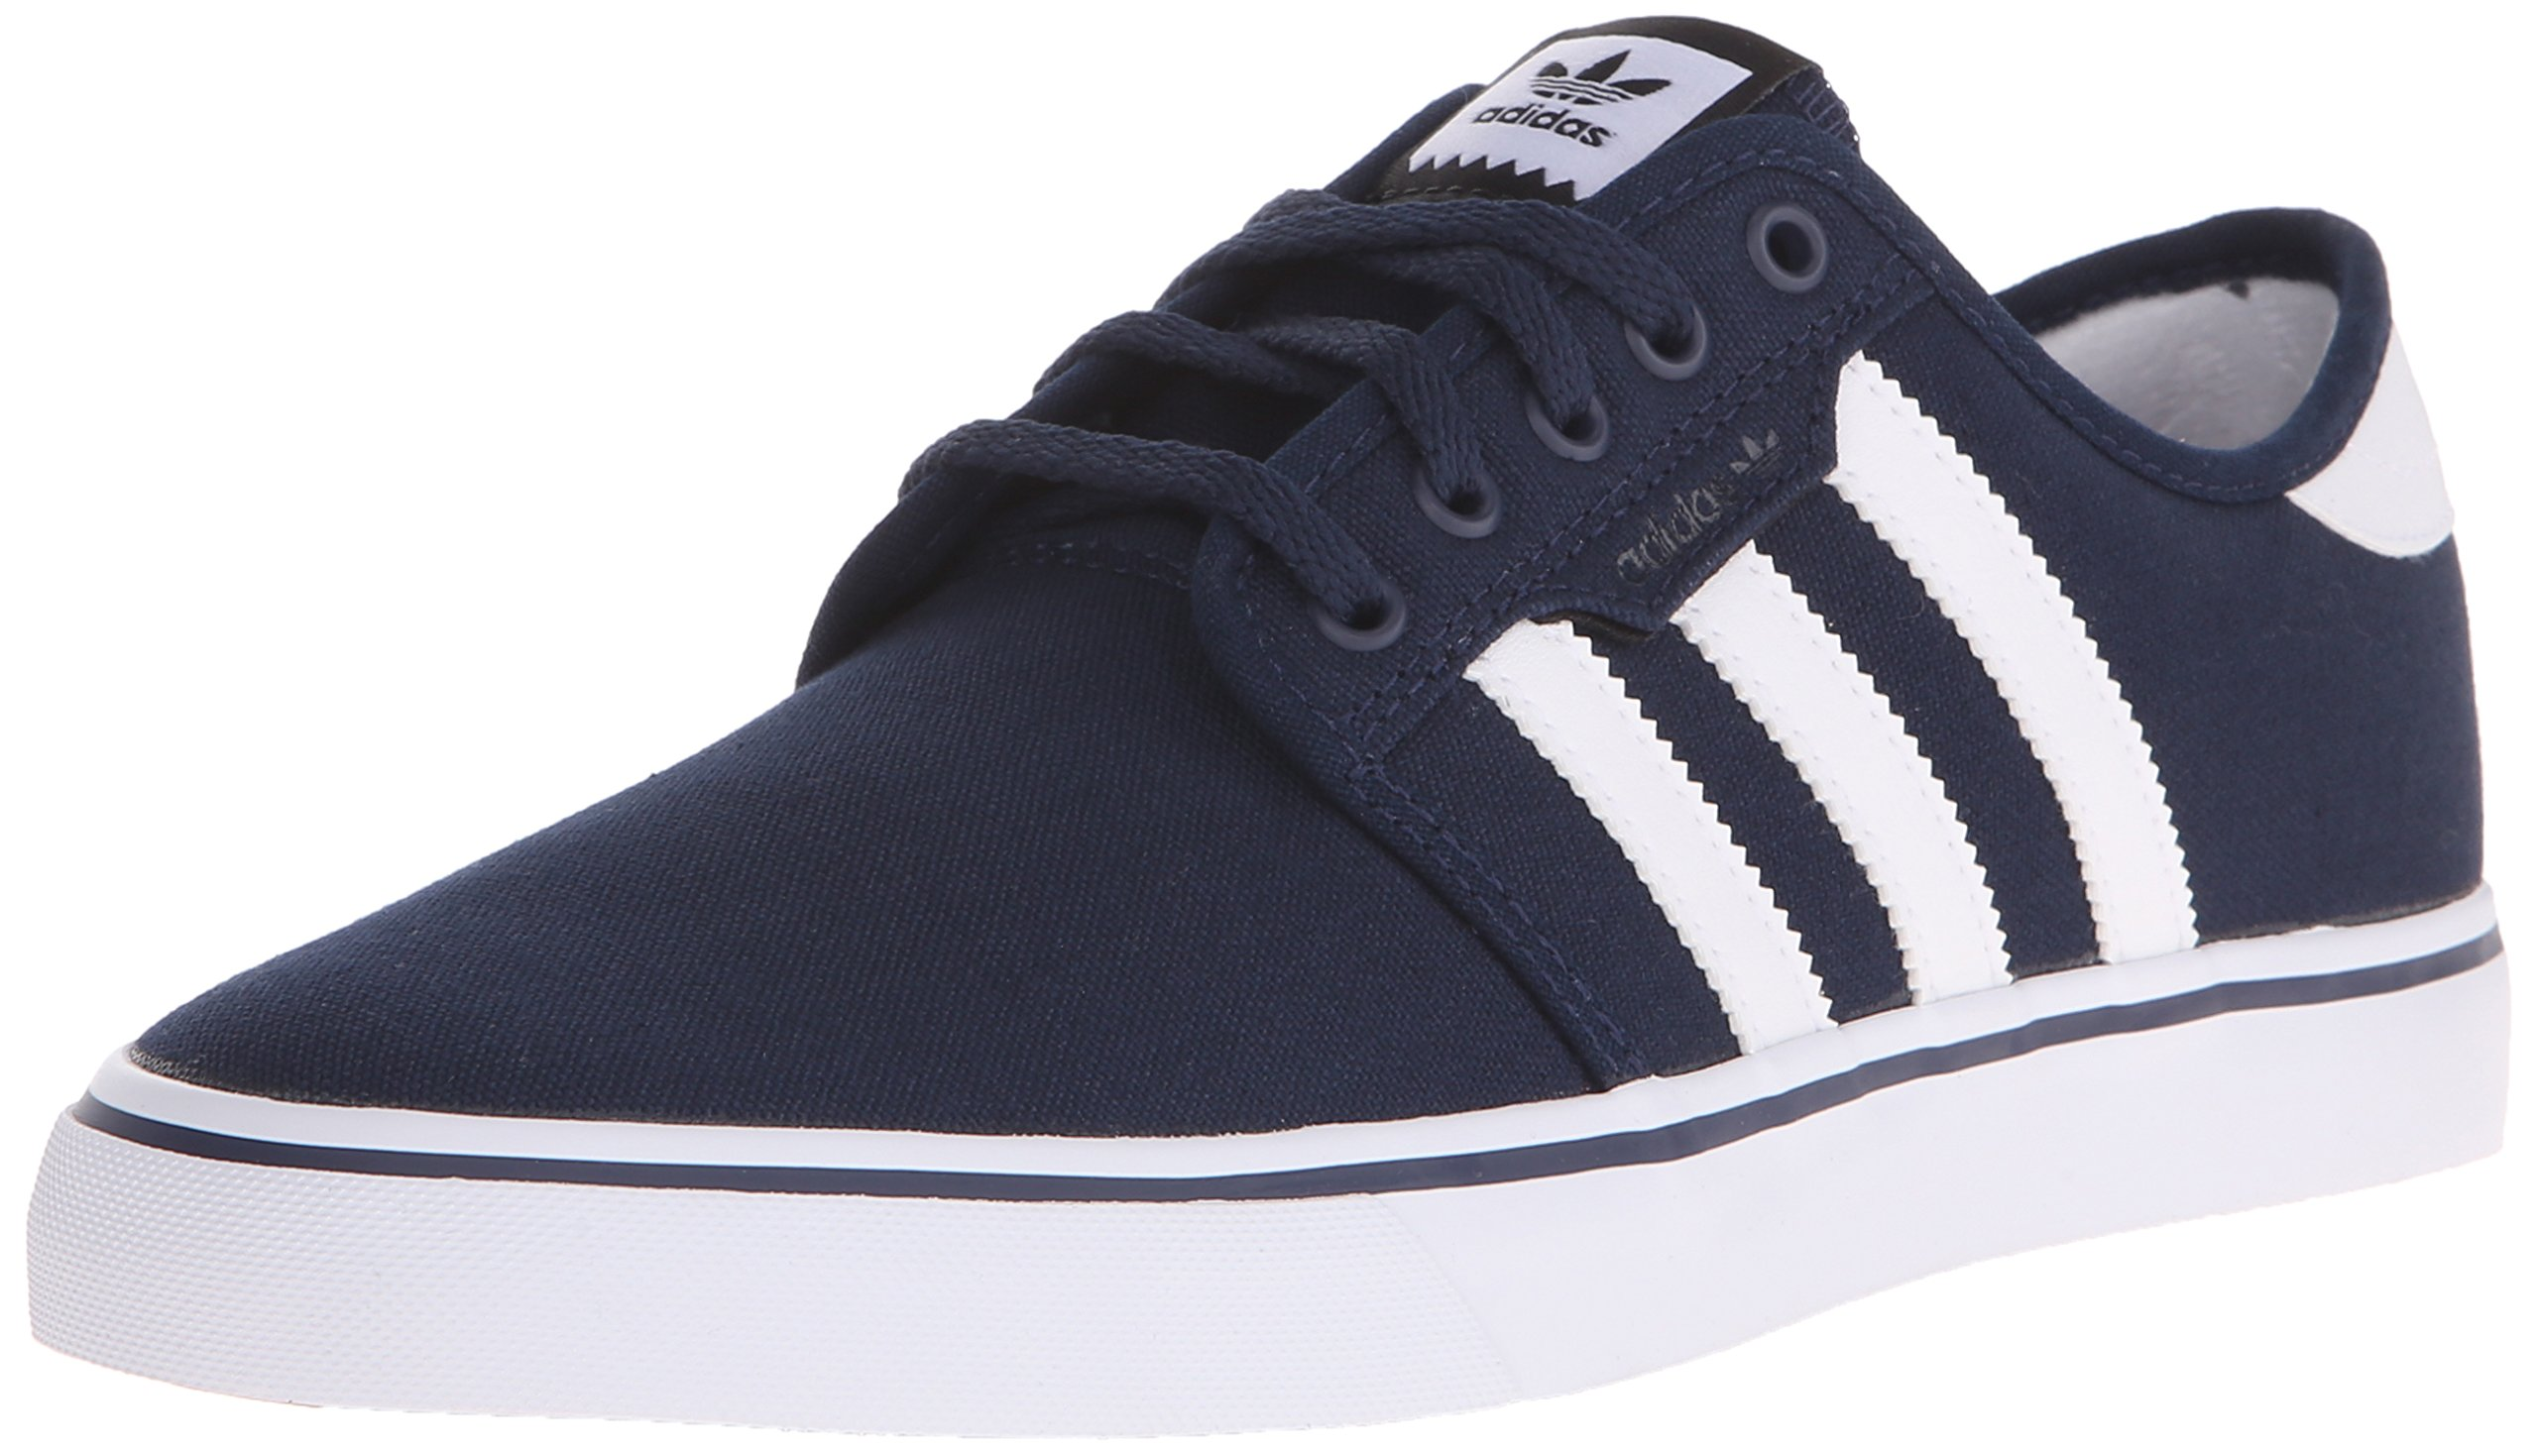 adidas Originals Men's Seeley Skate Shoe,Collegiate Navy/White/Black,8.5 M US